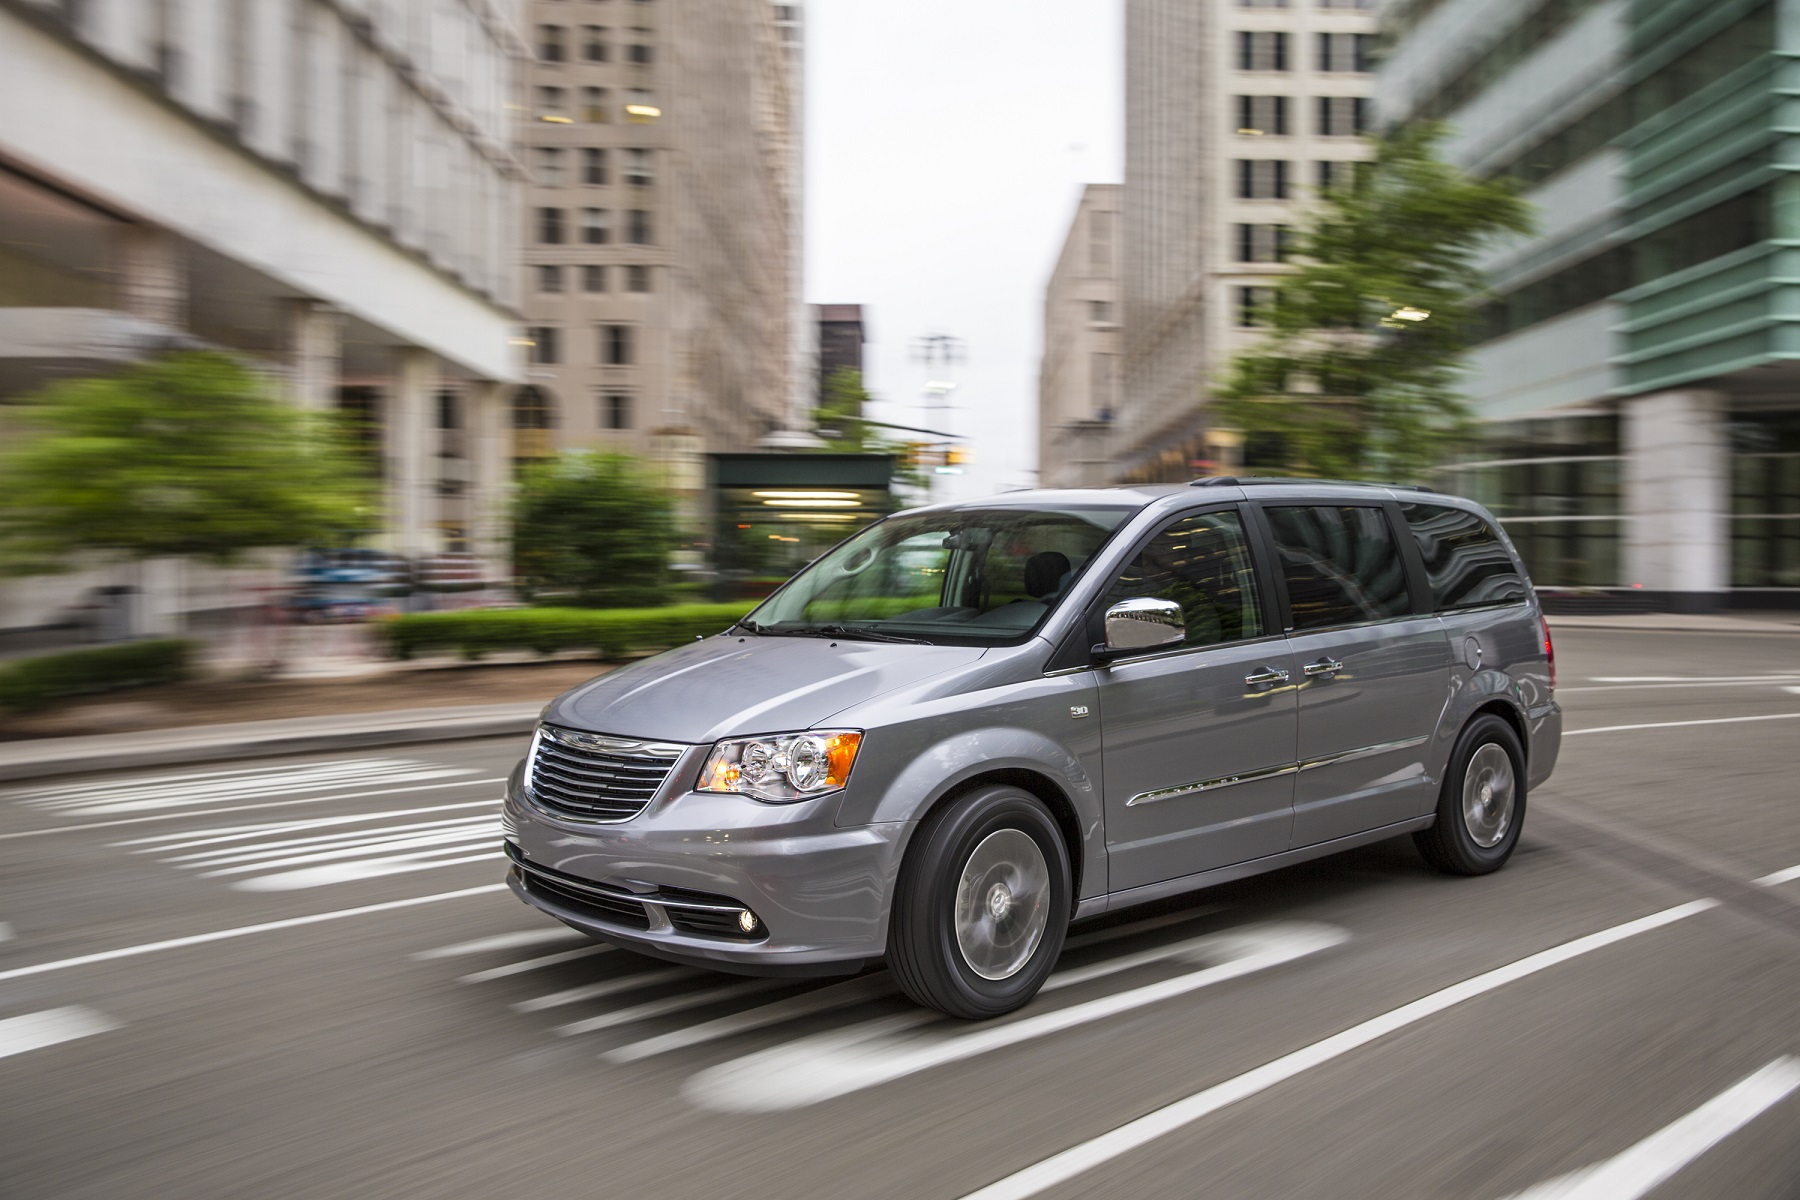 Manufacturer photo: The 2014 Chrysler Town & Country delivers an agile, confident driving experience